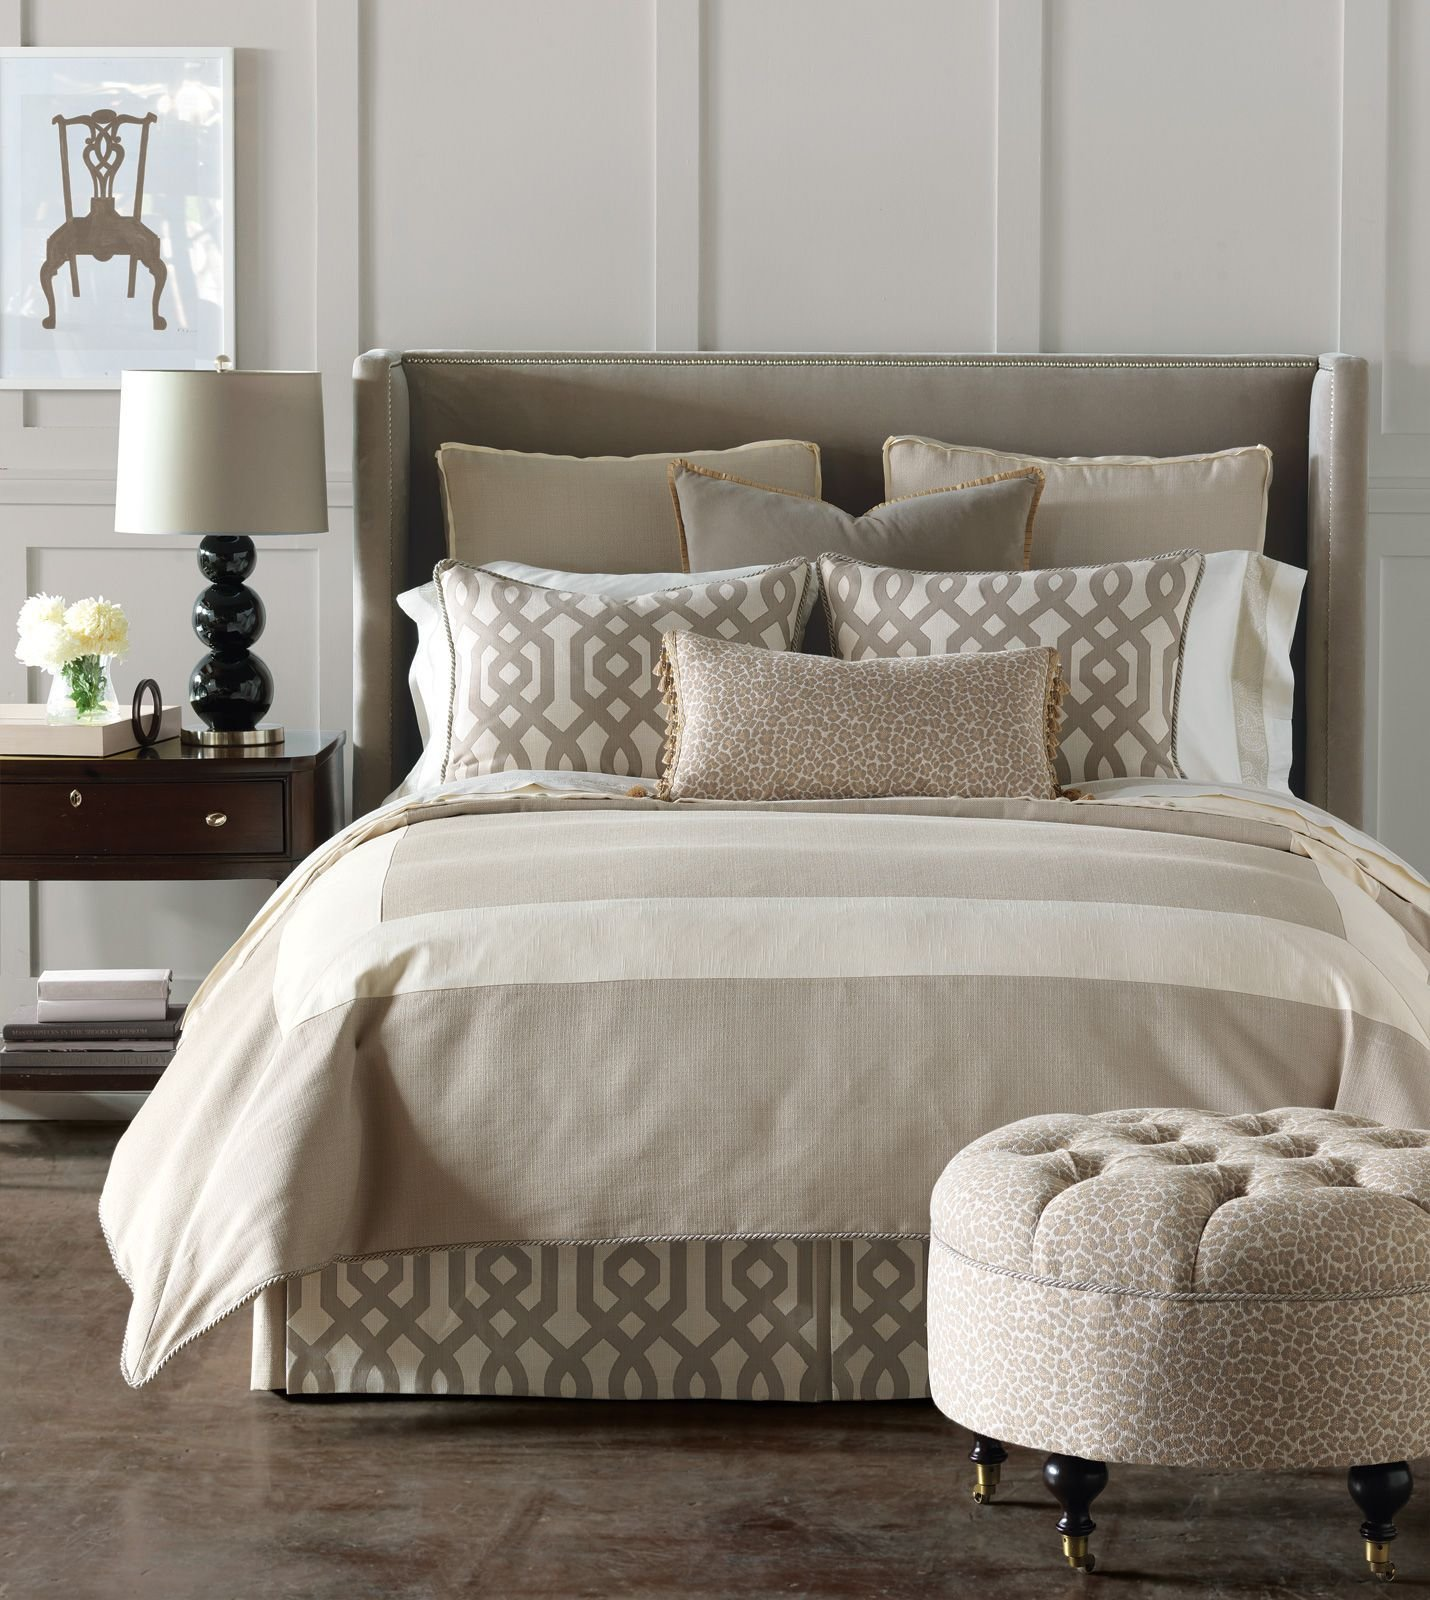 Best Custom Bedding On Pinterest Designers Guild Anchor With Pictures